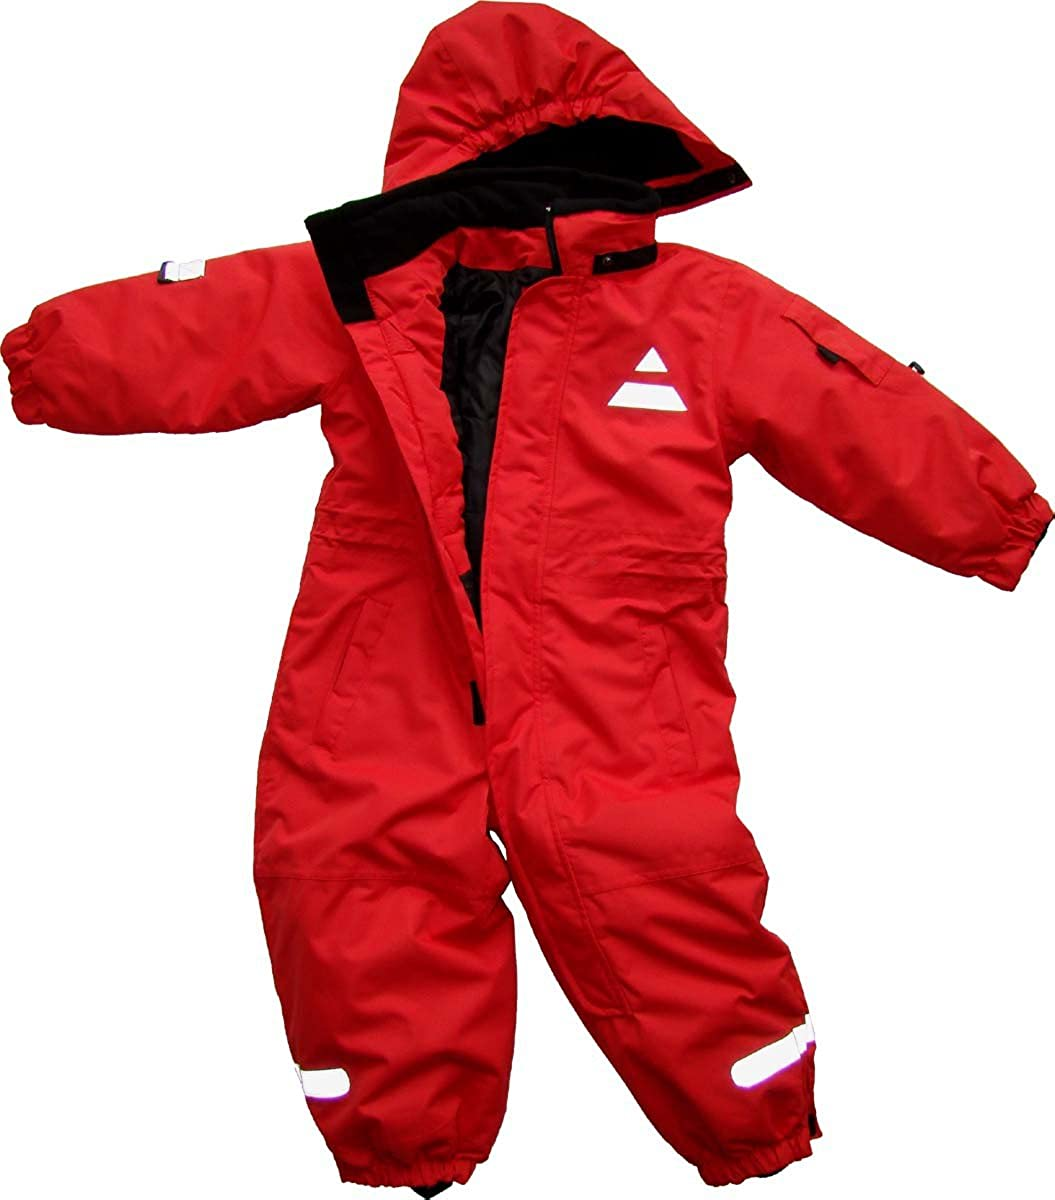 Maylynn Outdoor - Tuta da sci intera in Softshell - bebè - rosso